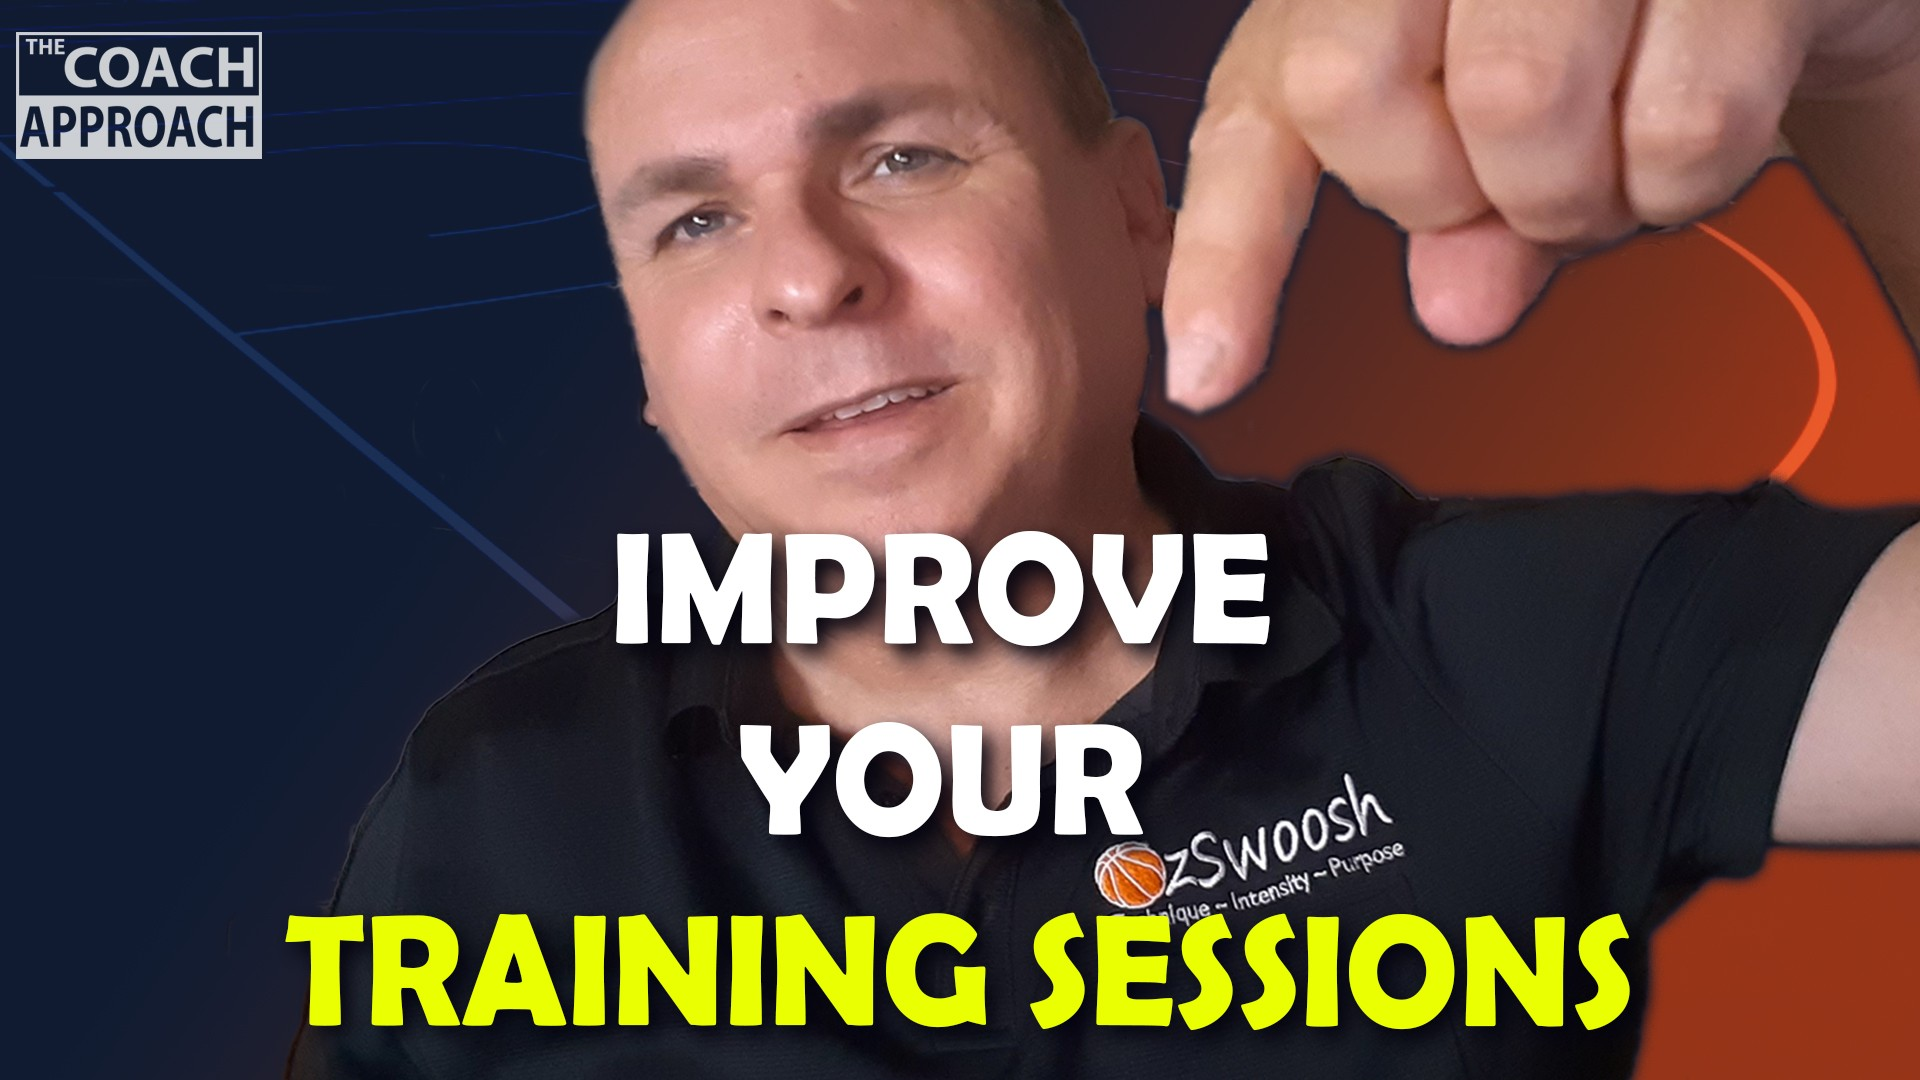 Improve Basketball Training Session Efficiency - The Coach Approach